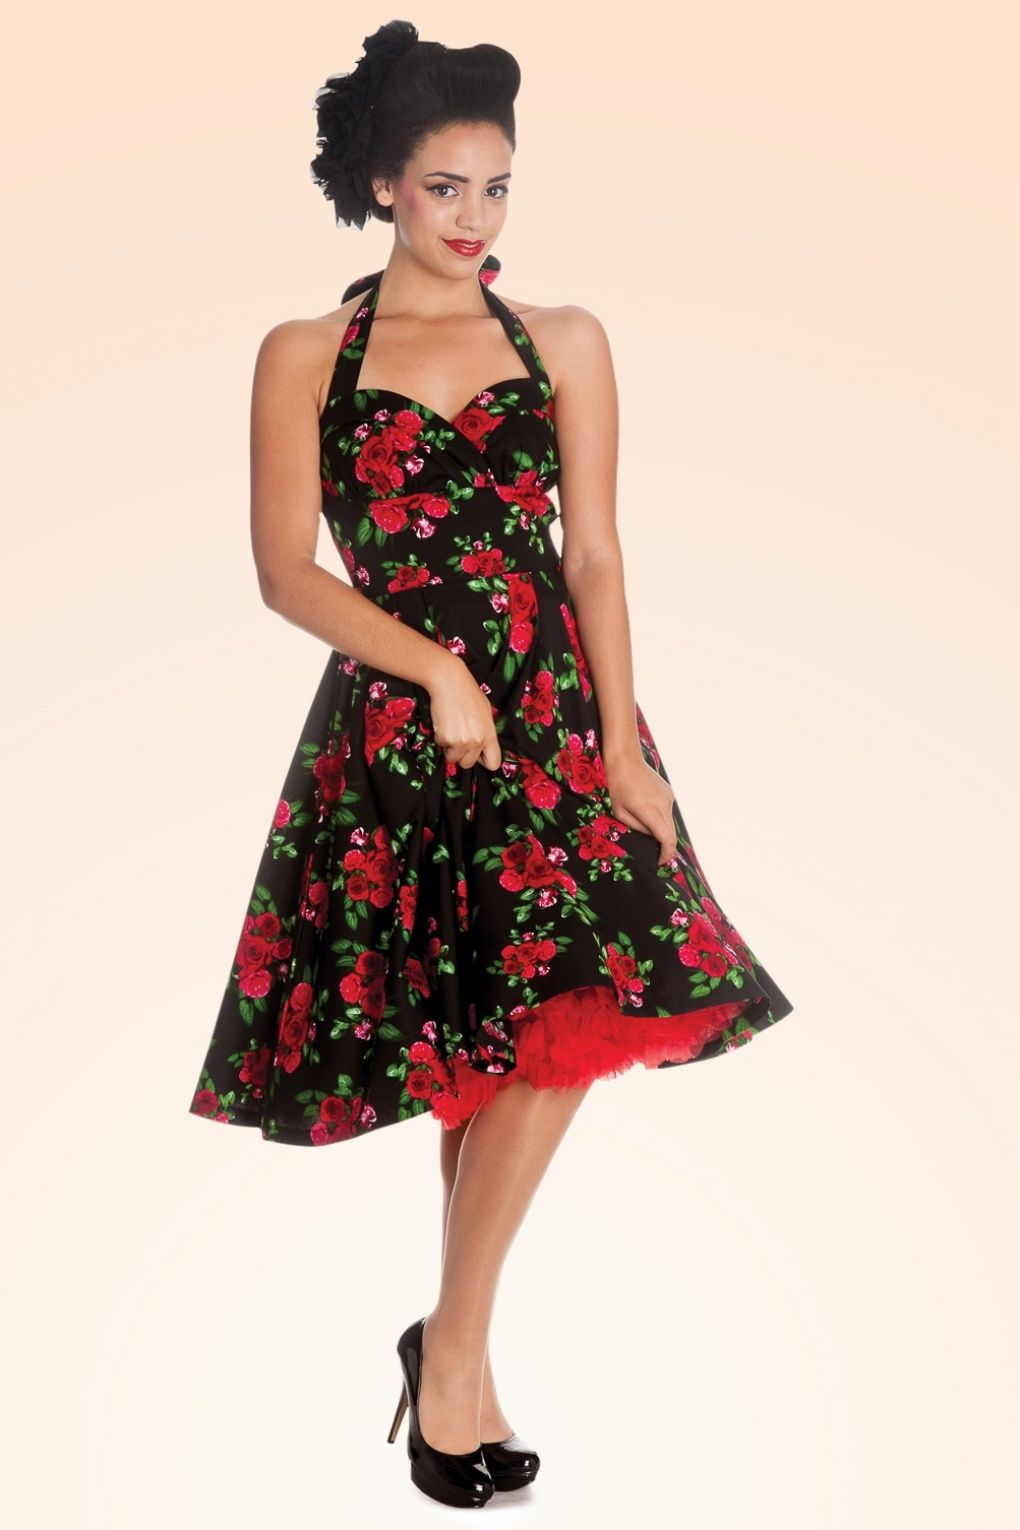 Bunny - 50s Retro Halter Cannes Roses Dress in Black